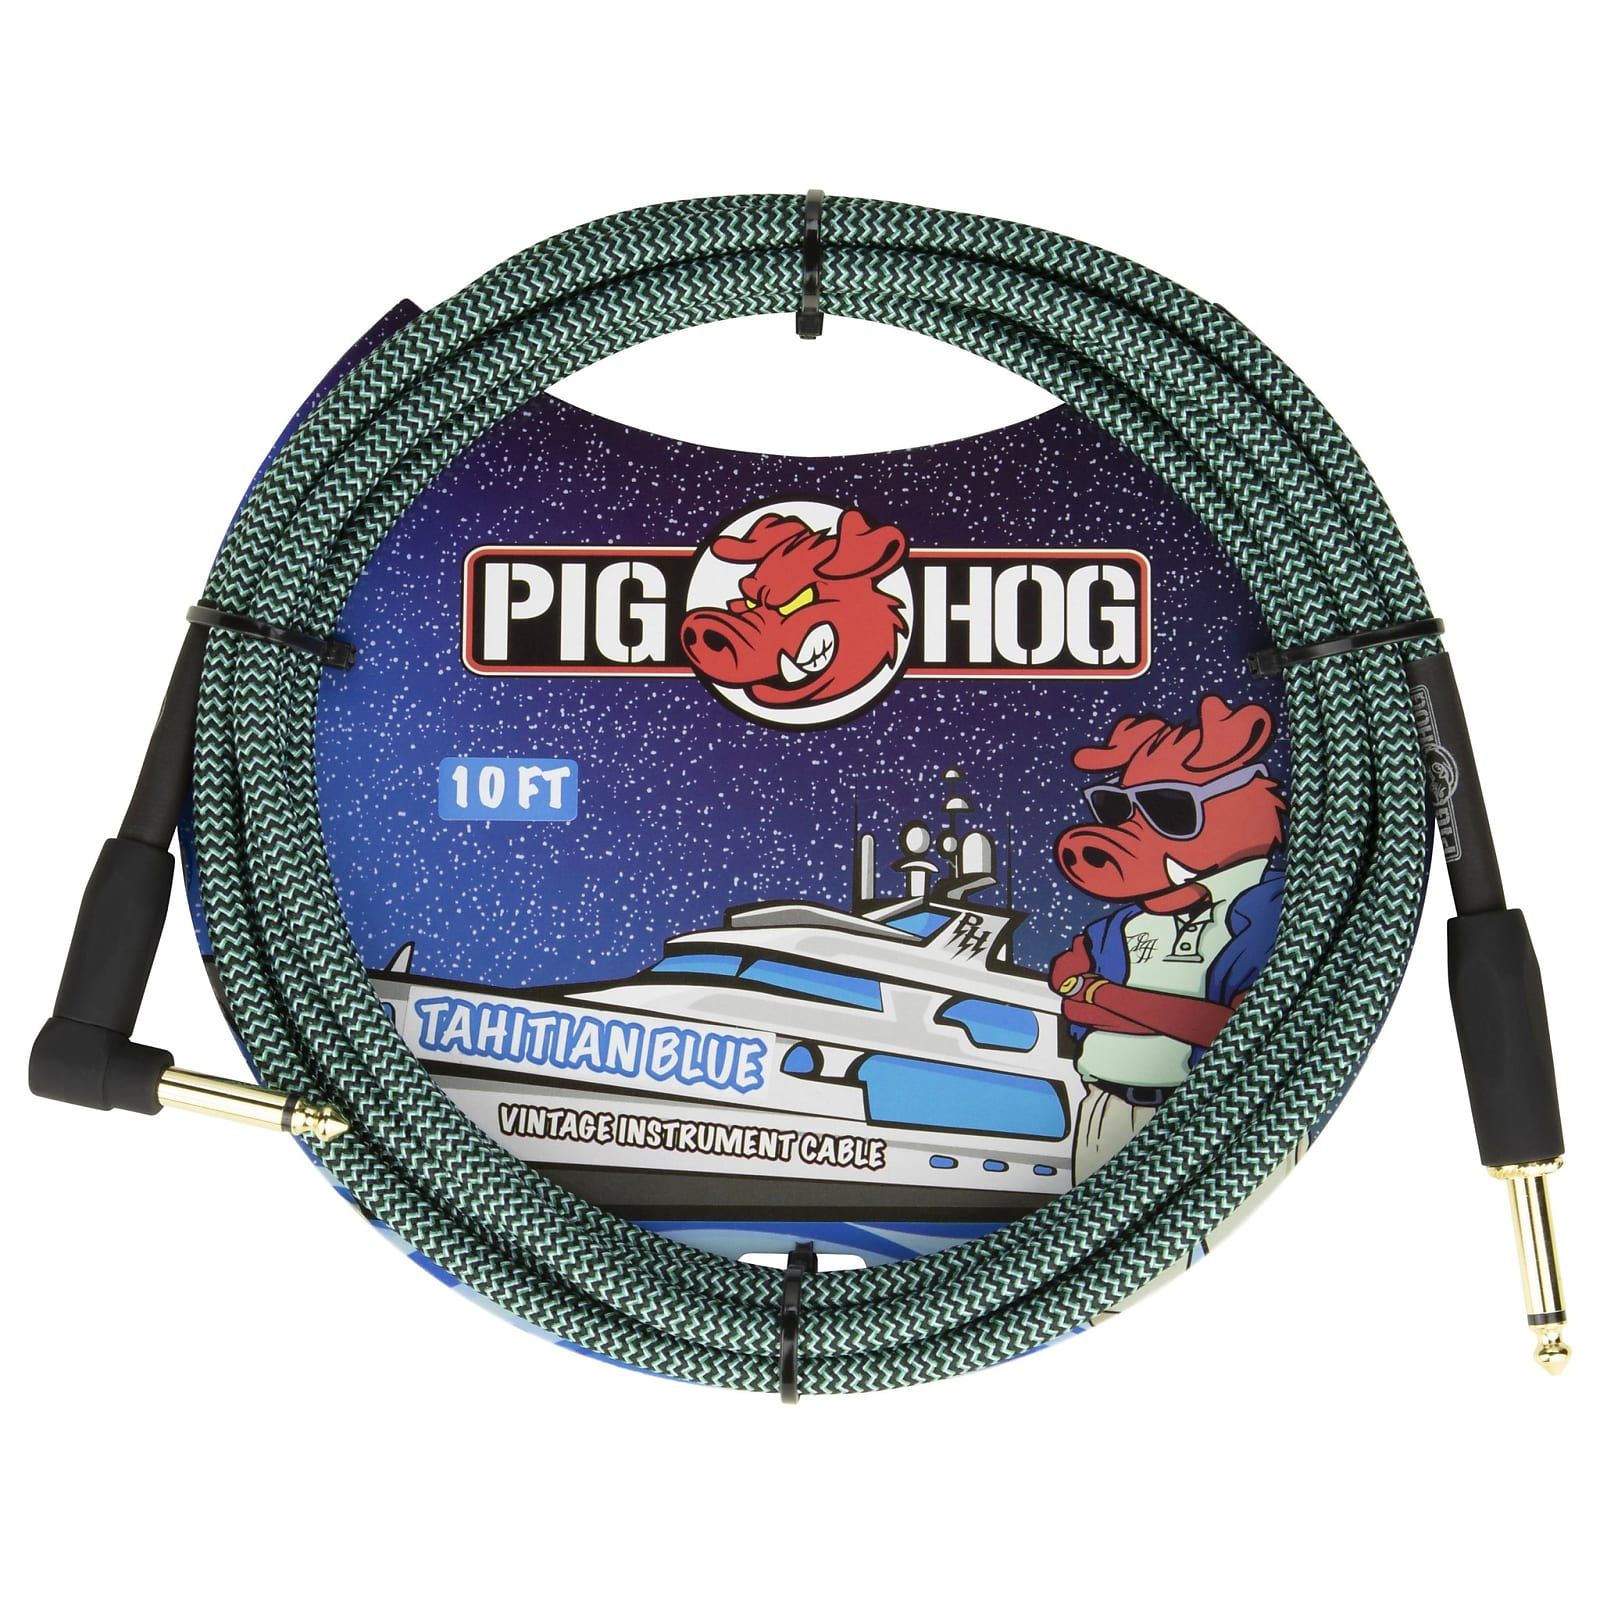 "Pig Hog 10-Foot Vintage Woven Instrument Cable, 1/4"" Straight-Right Angle, Tahitian Blue - New 2020!"